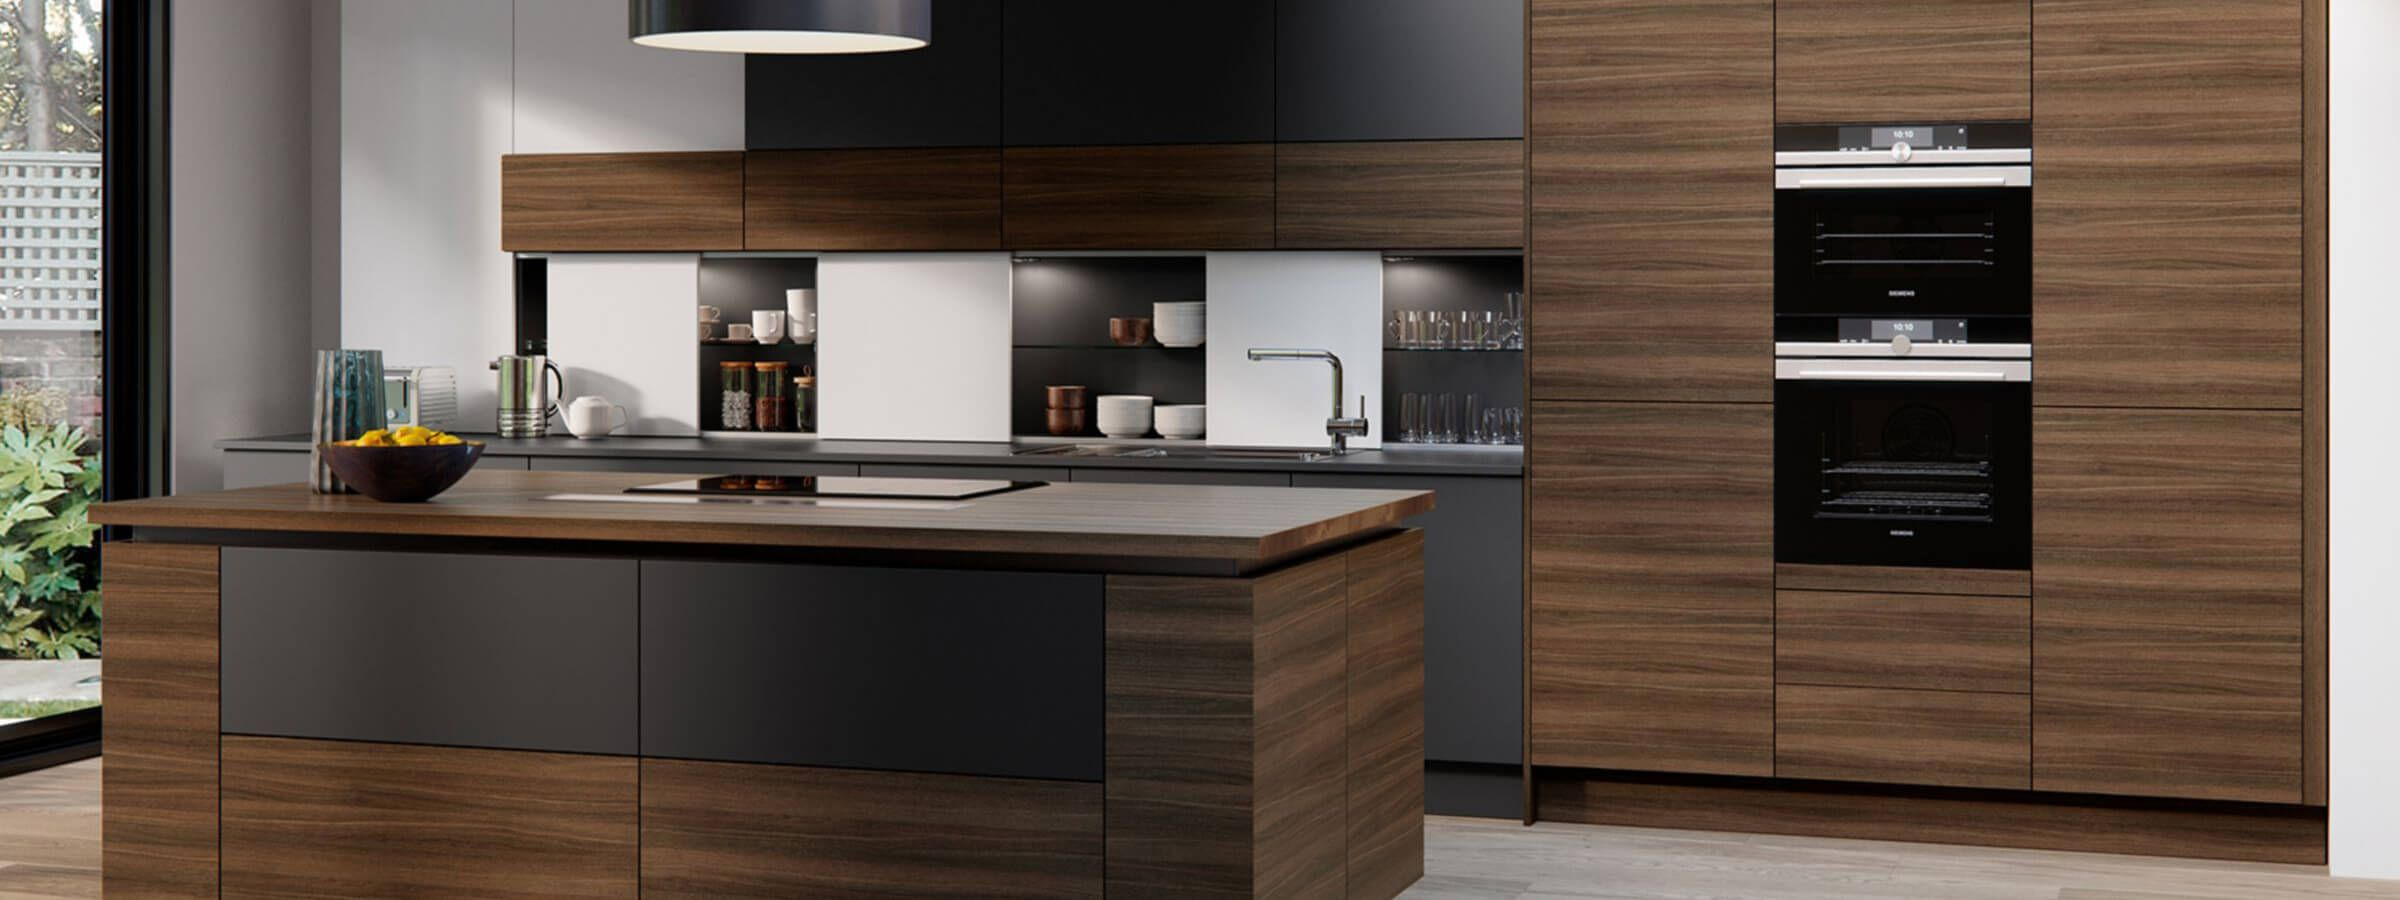 Rugby fitted kitchens expert kitchen fitting in london for High level kitchen units